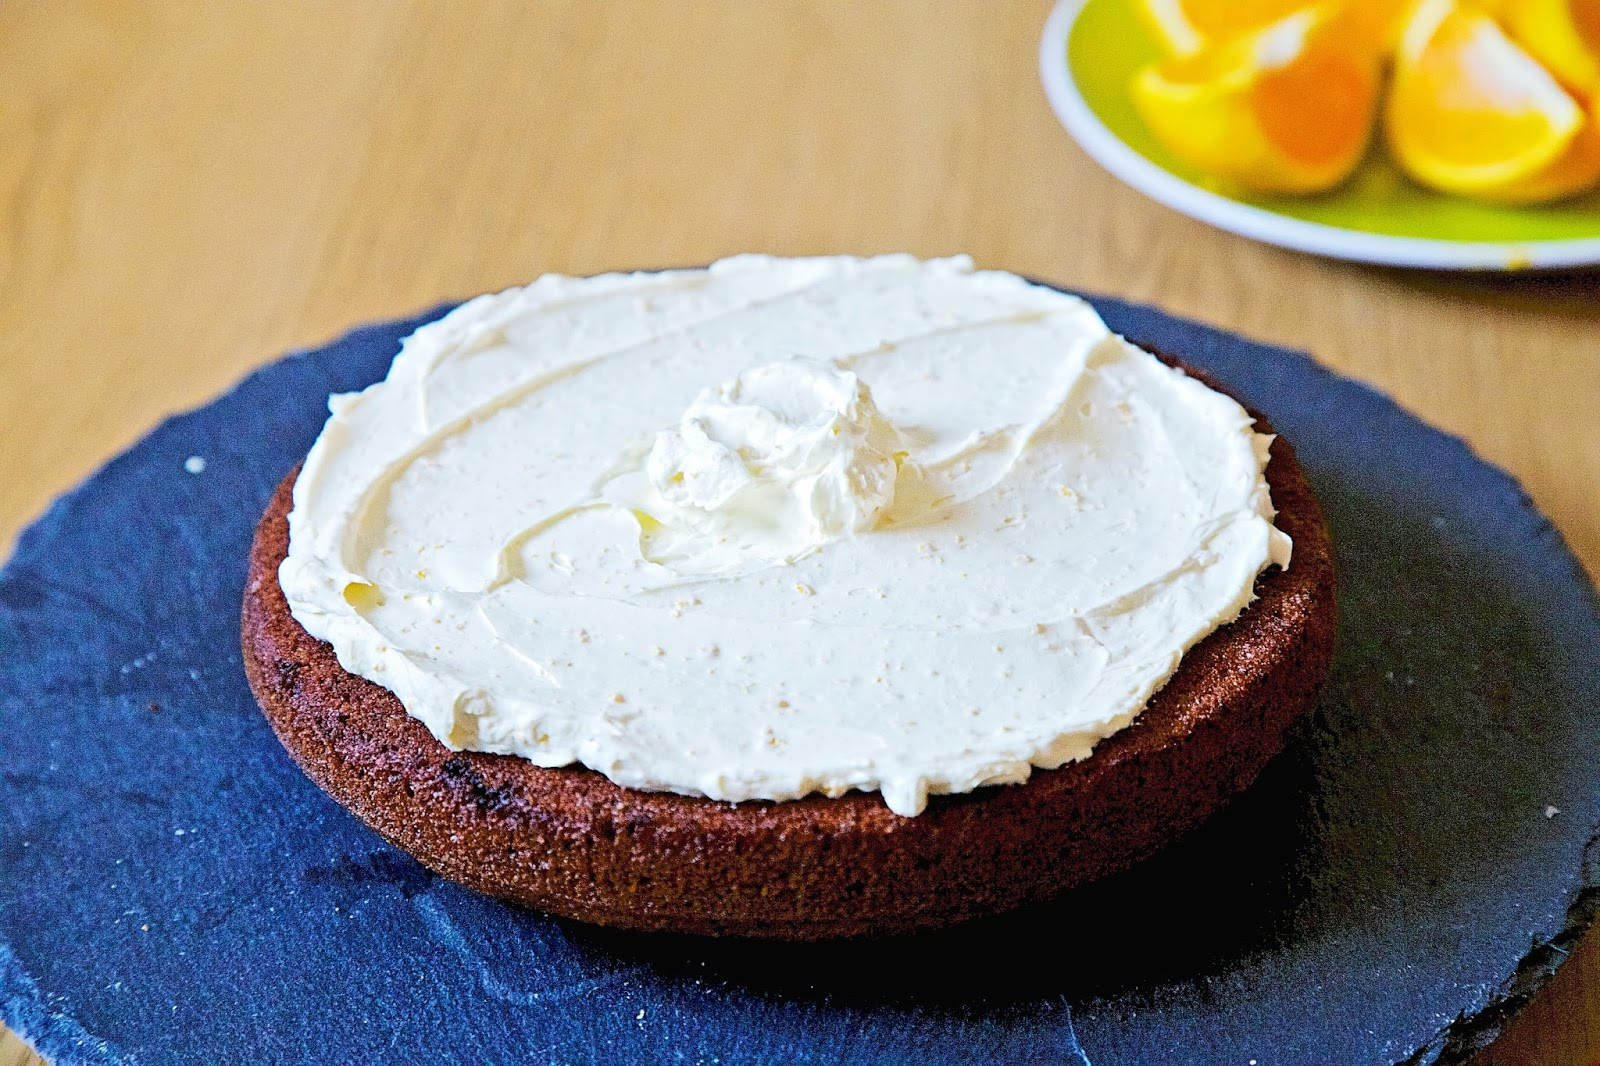 Chocolate cake layer topped with orange whipped cream.